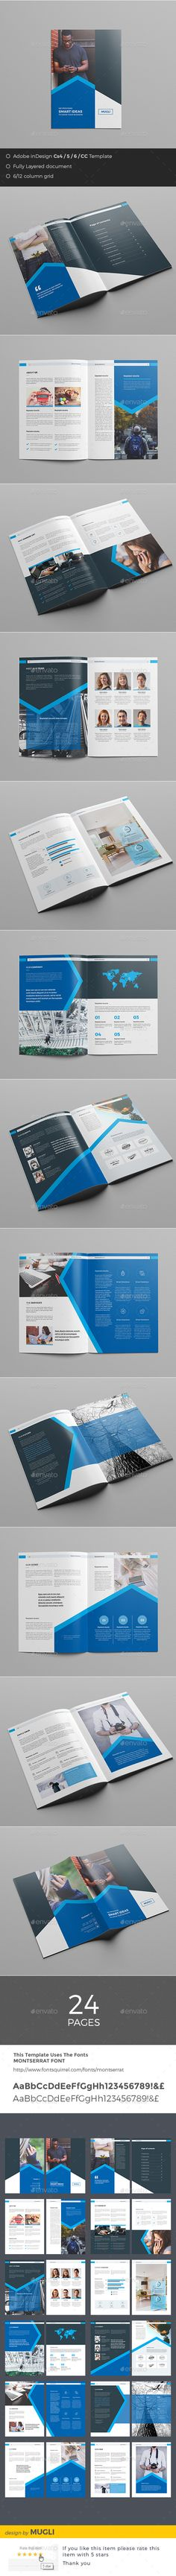 Corporate Brochure  — InDesign Template #clean #swiss • Download ➝ https://graphicriver.net/item/corporate-brochure/18372573?ref=pxcr